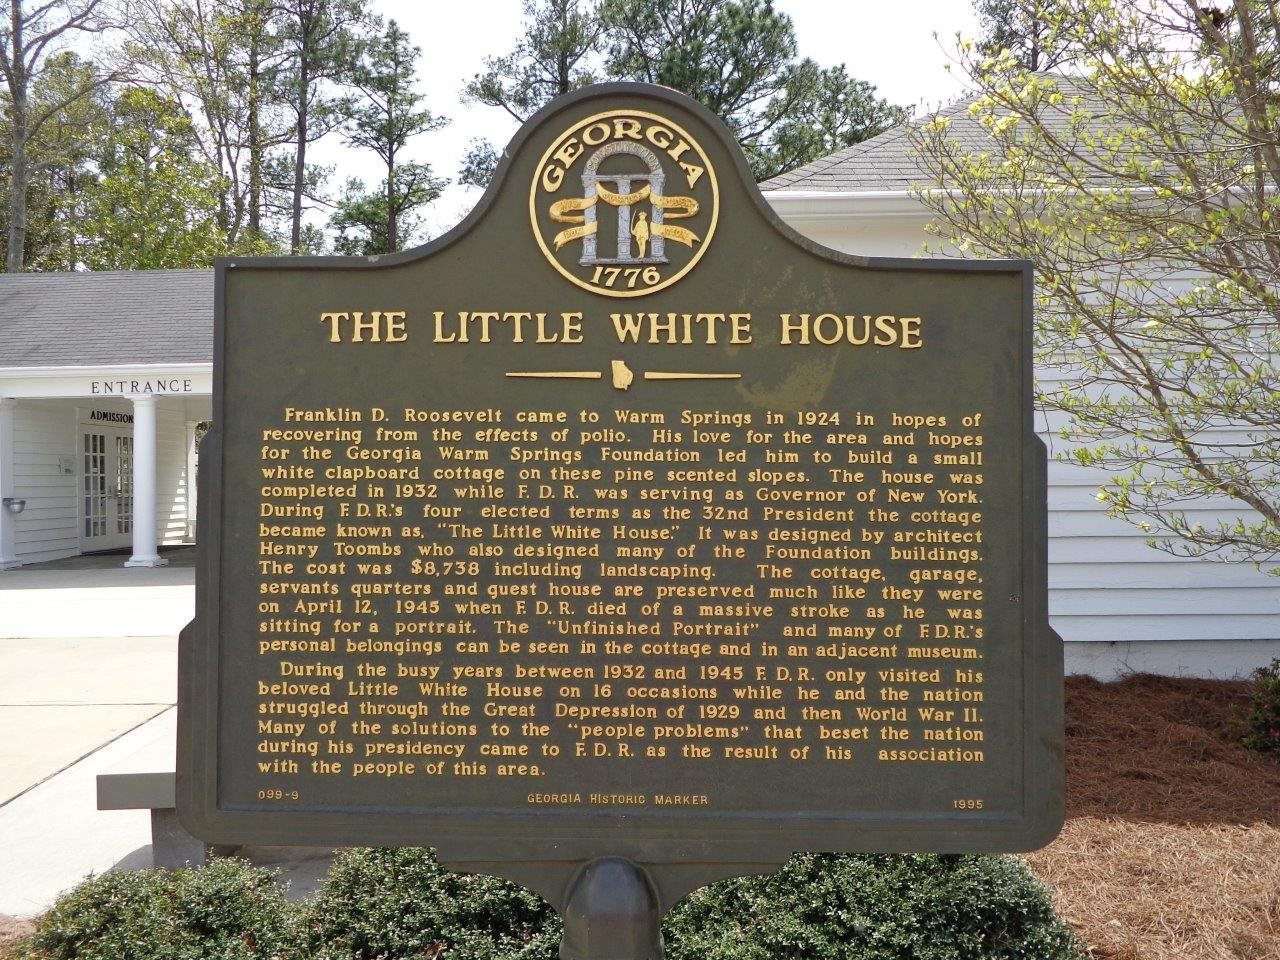 The Georgia State Marker placed at the entrance to the Little White House's gift shop and ticket office